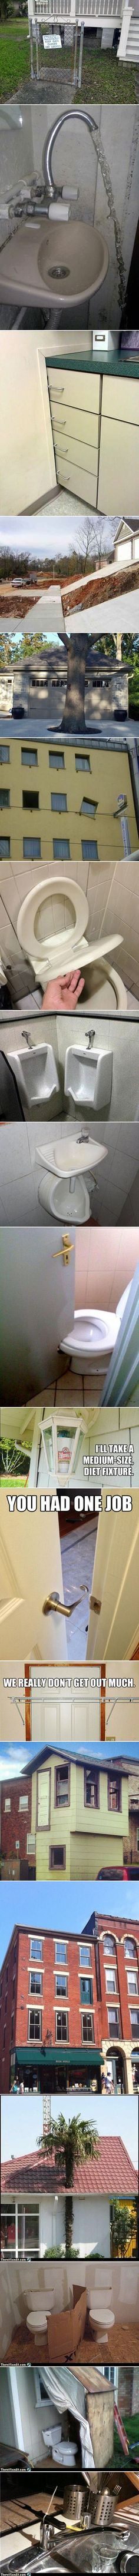 We have rounded up a few construction FAILS that will leave you puzzled.